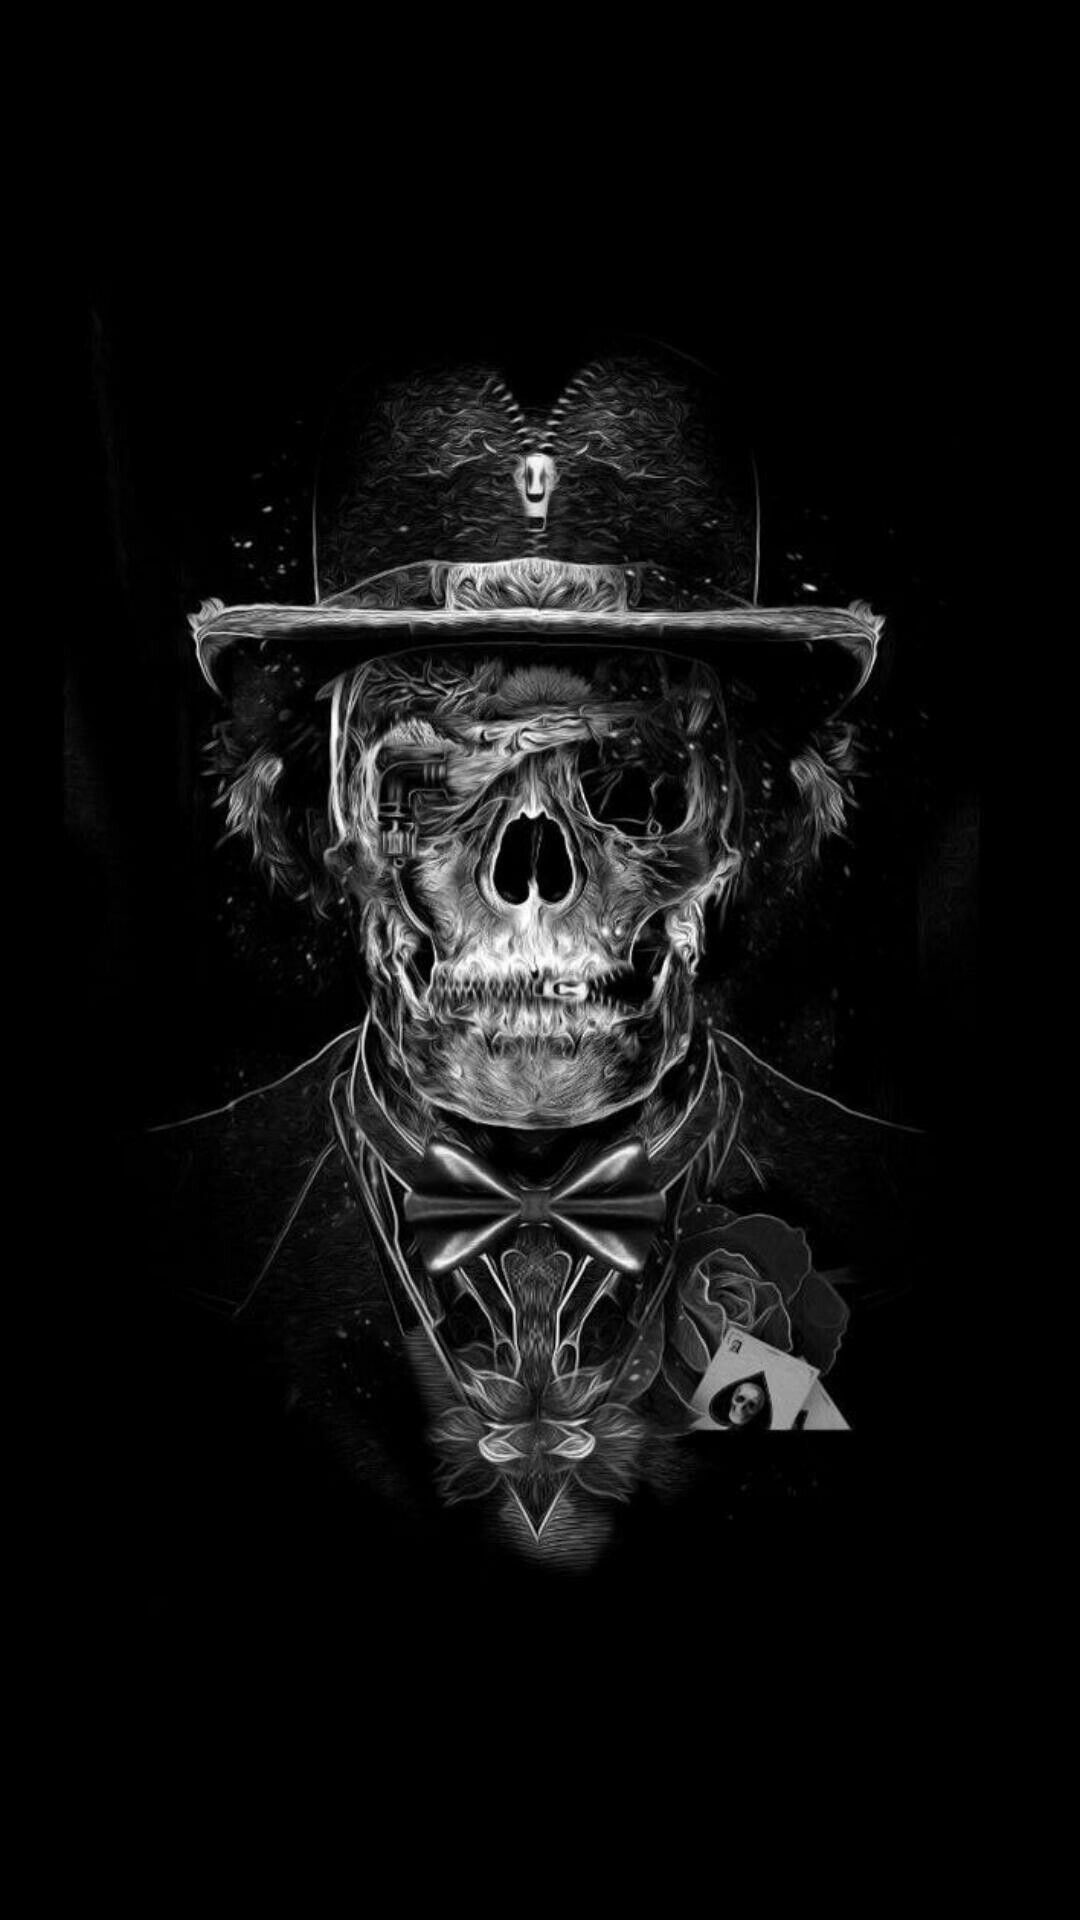 Raiders Wallpaper For Cell Phone 80 Images